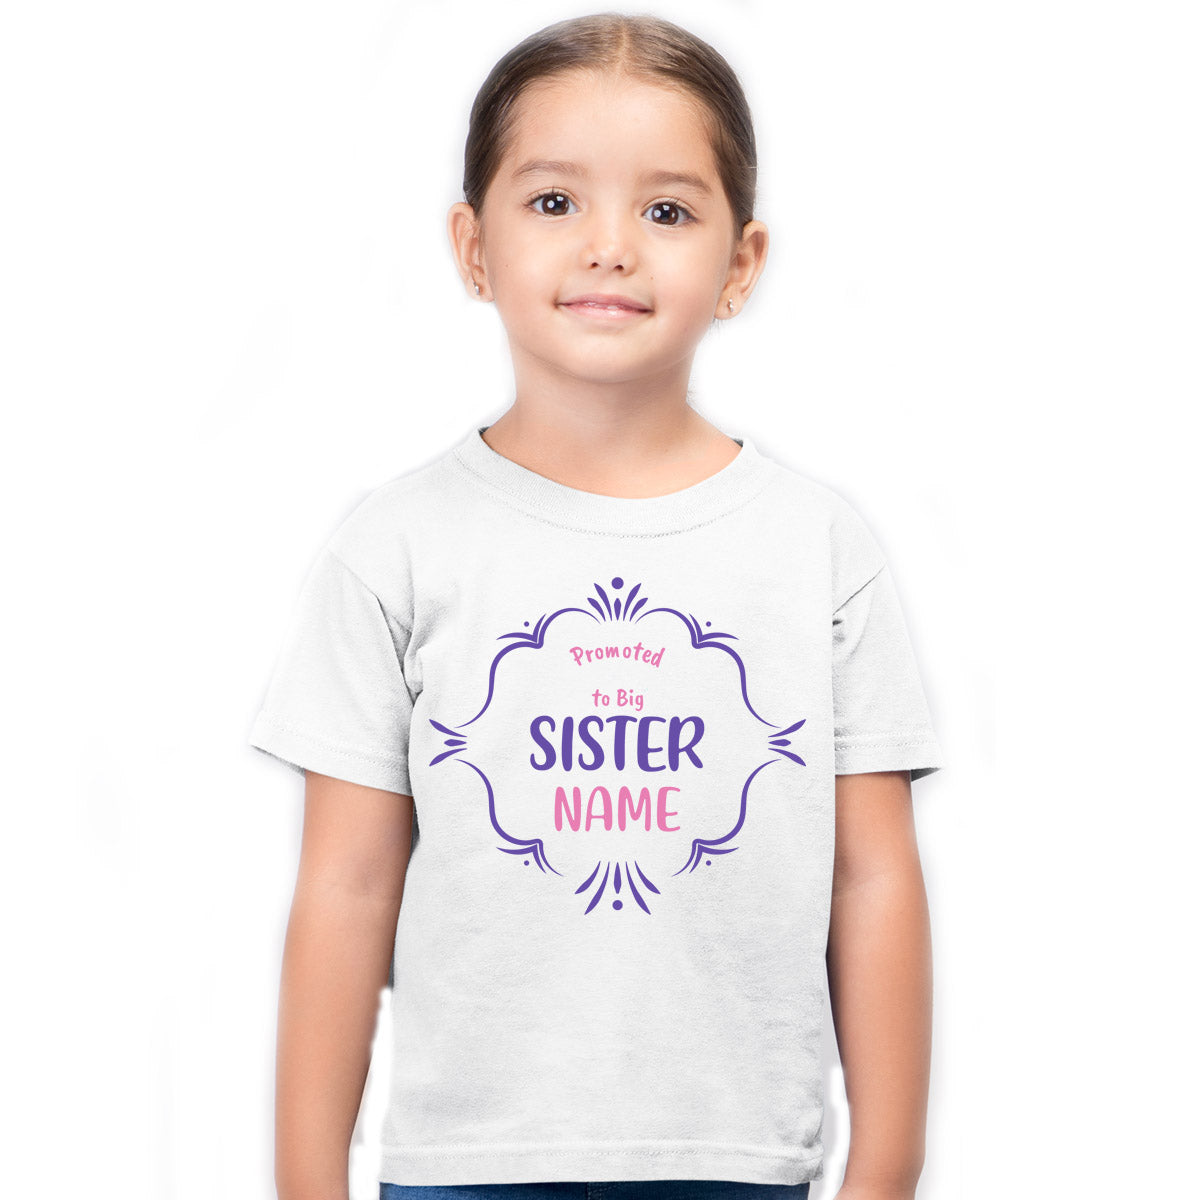 Sprinklecart Promoted to Big Sister Printed Personalized Name Printed Kids Poly-Cotton Tee (White)